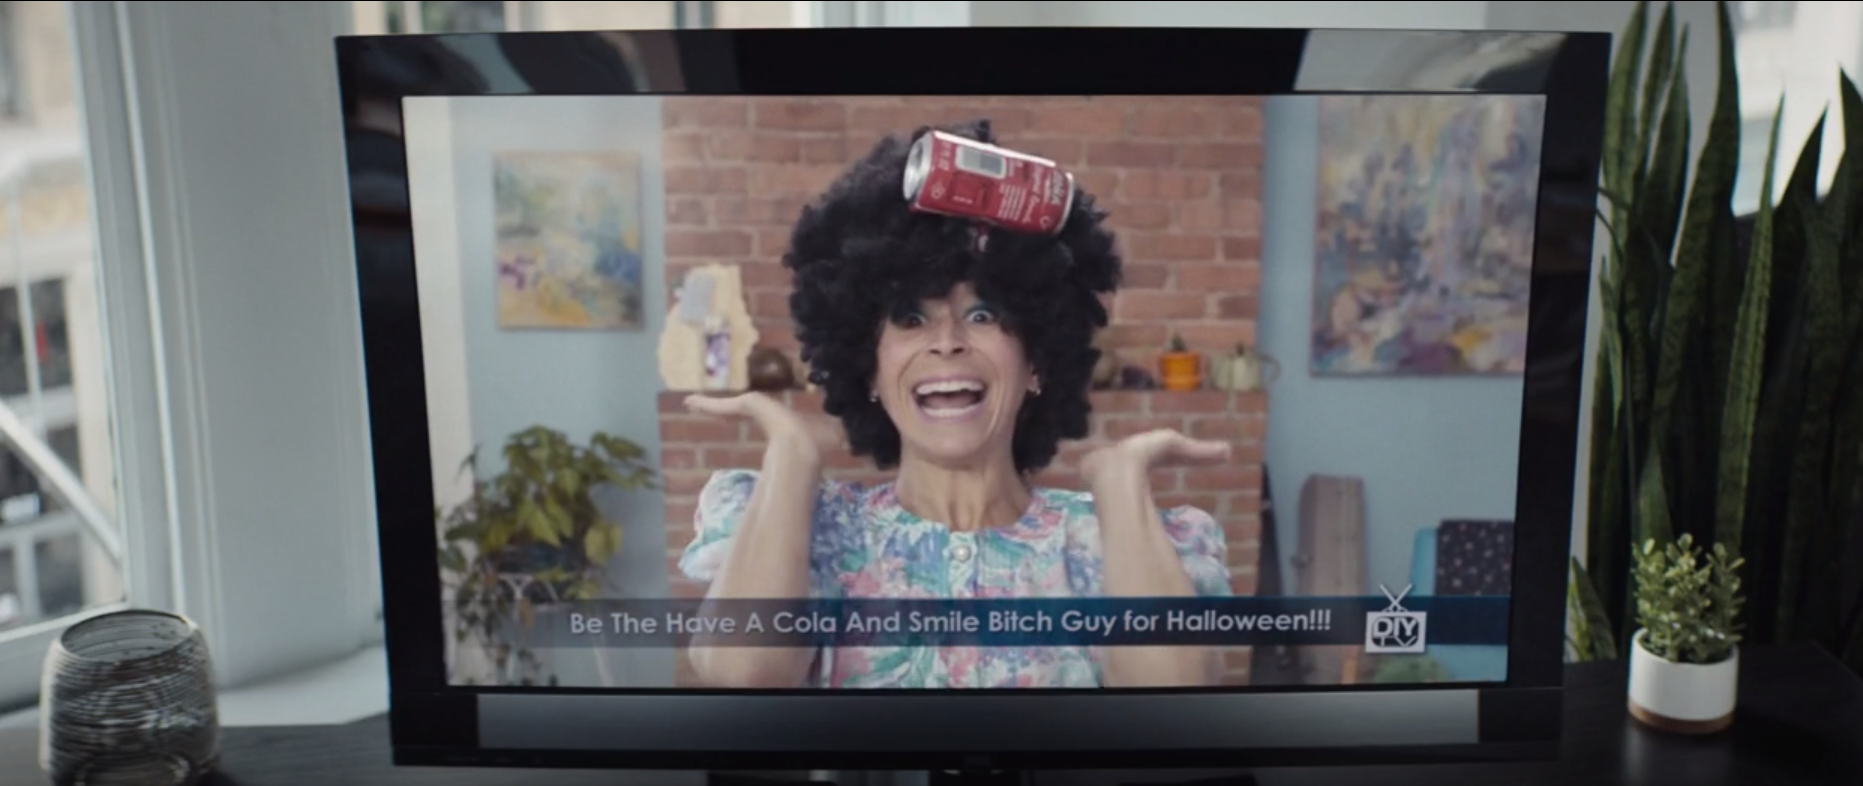 Cash's soda can incident becomes a viral meme and a commodity that the soda company capitalizes on.